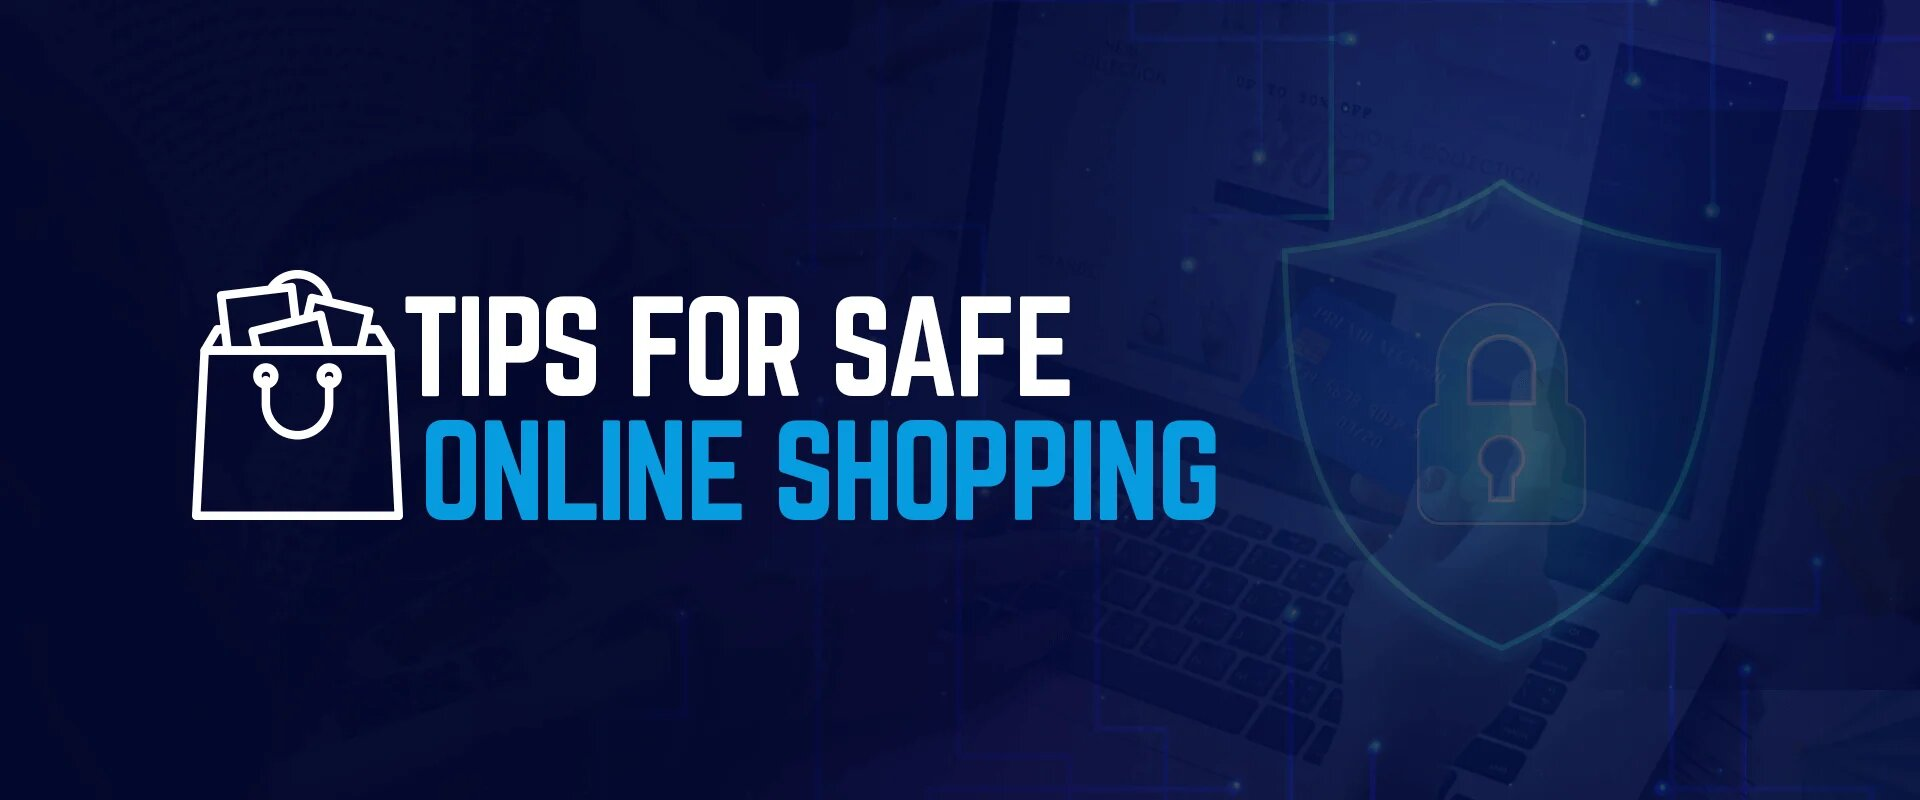 Top Tips for Safe Online Shopping – What You Need to Know